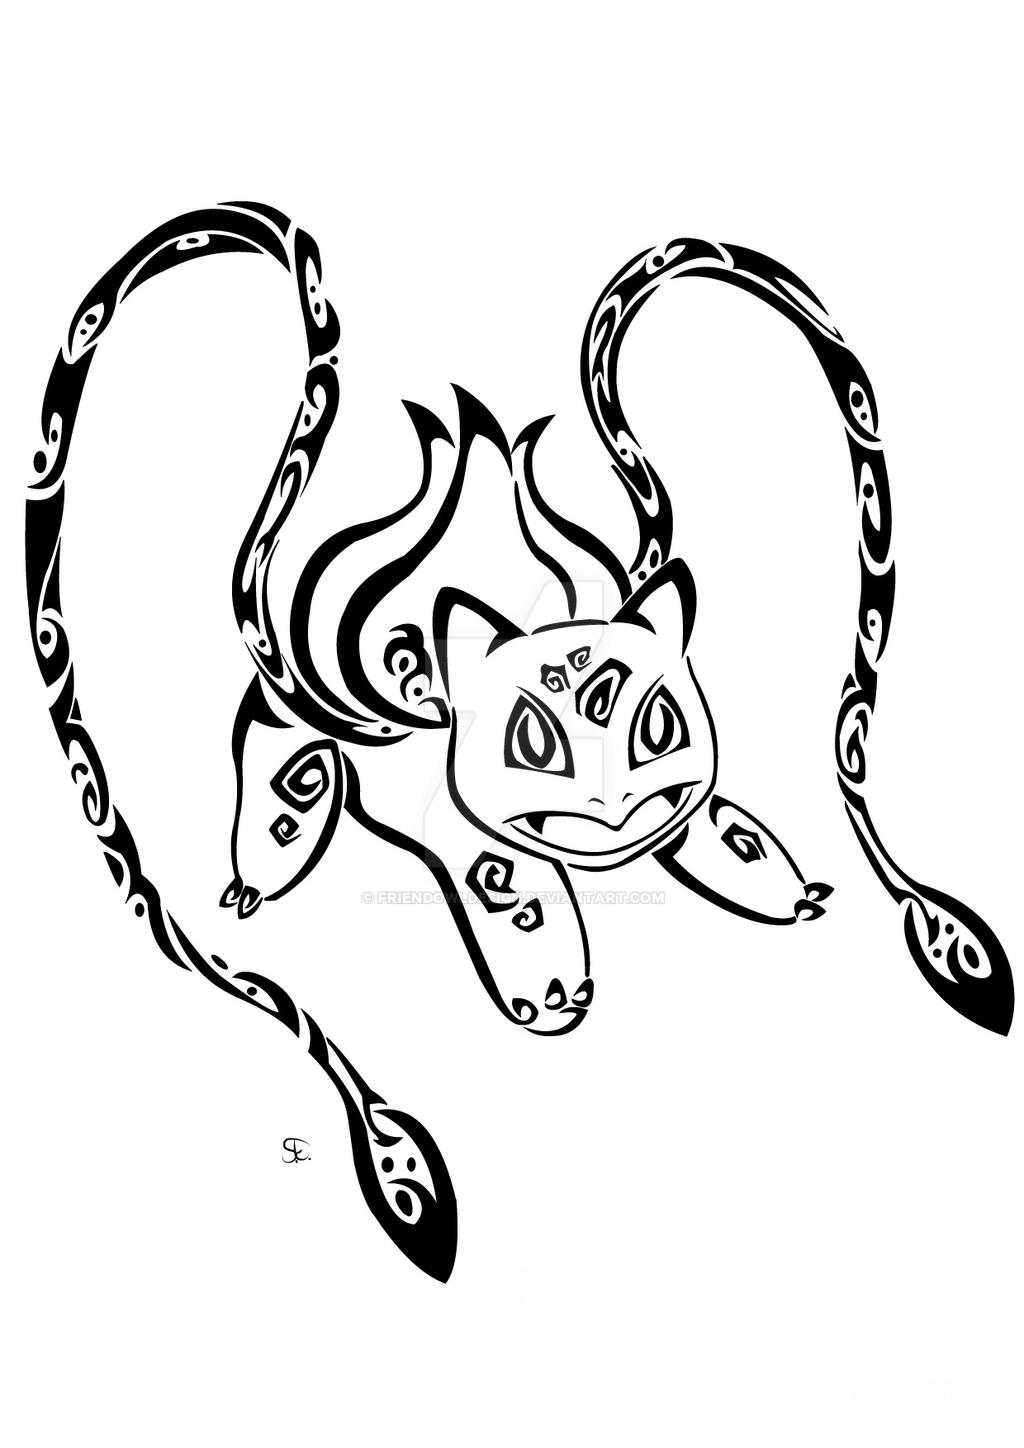 Tribal Bulbasaur Commission by Friend-Owl